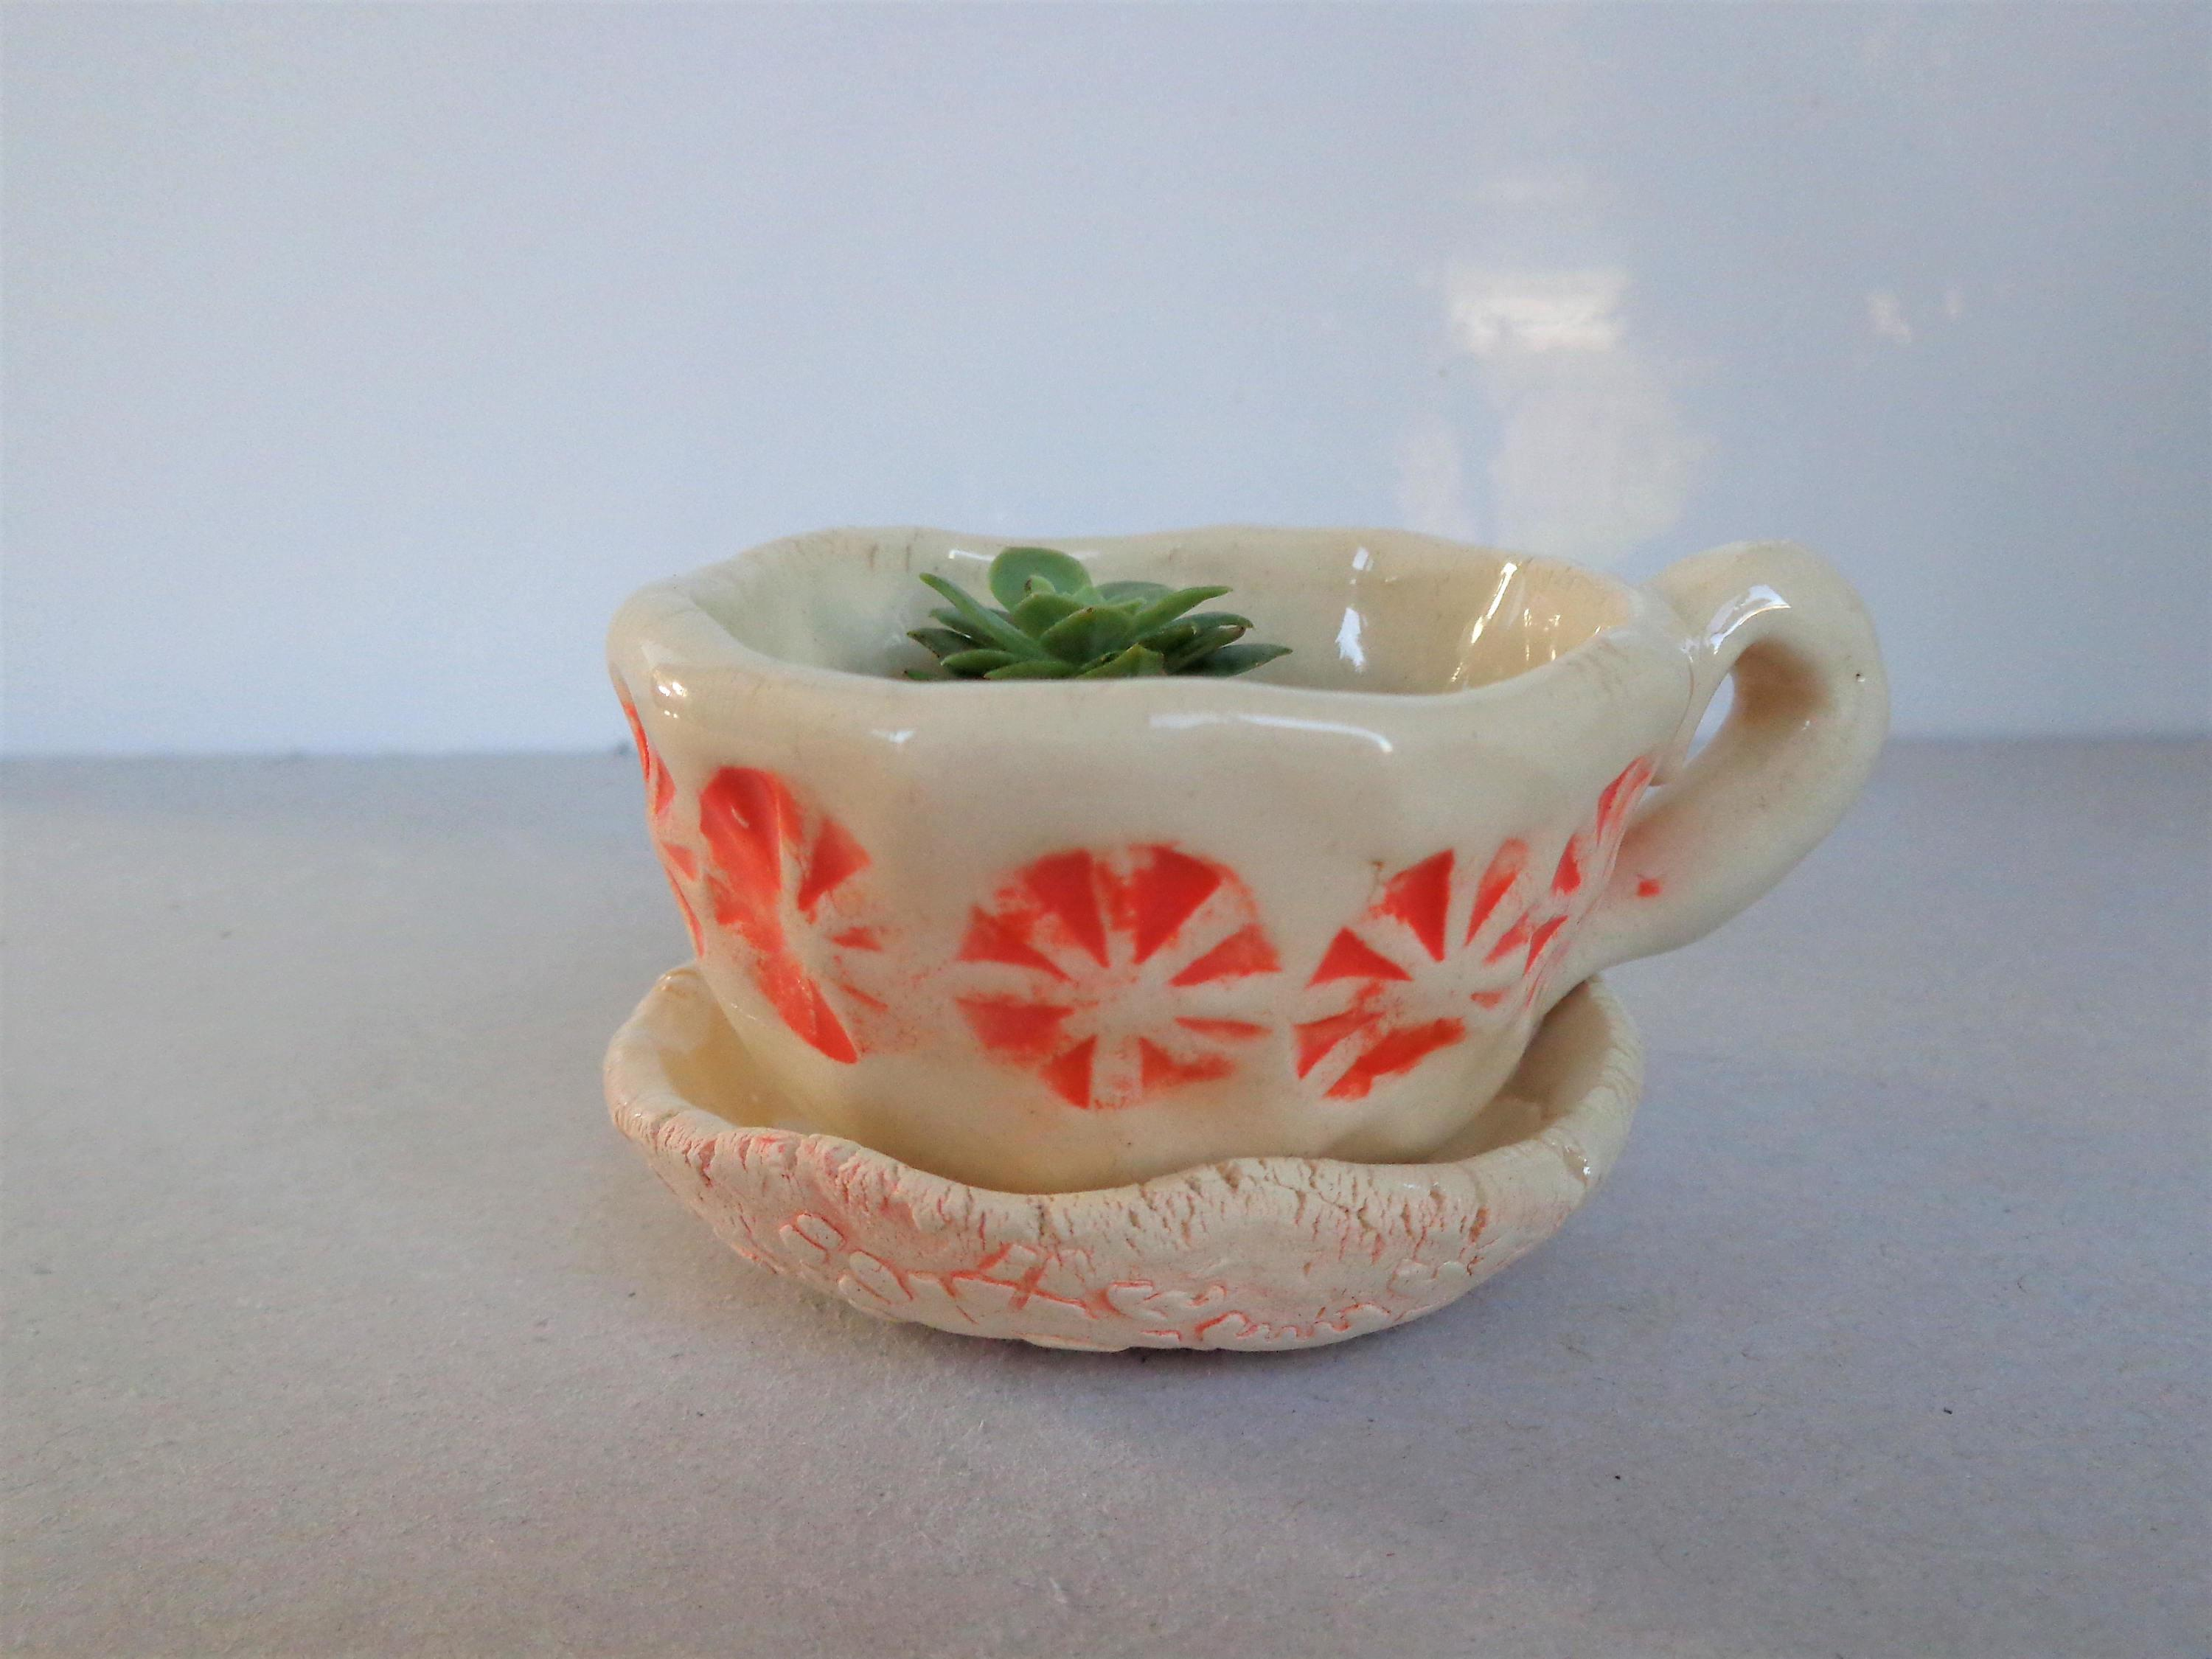 Tiny Ceramic Orange Dots Cup Planter Pot Saucer Handmade